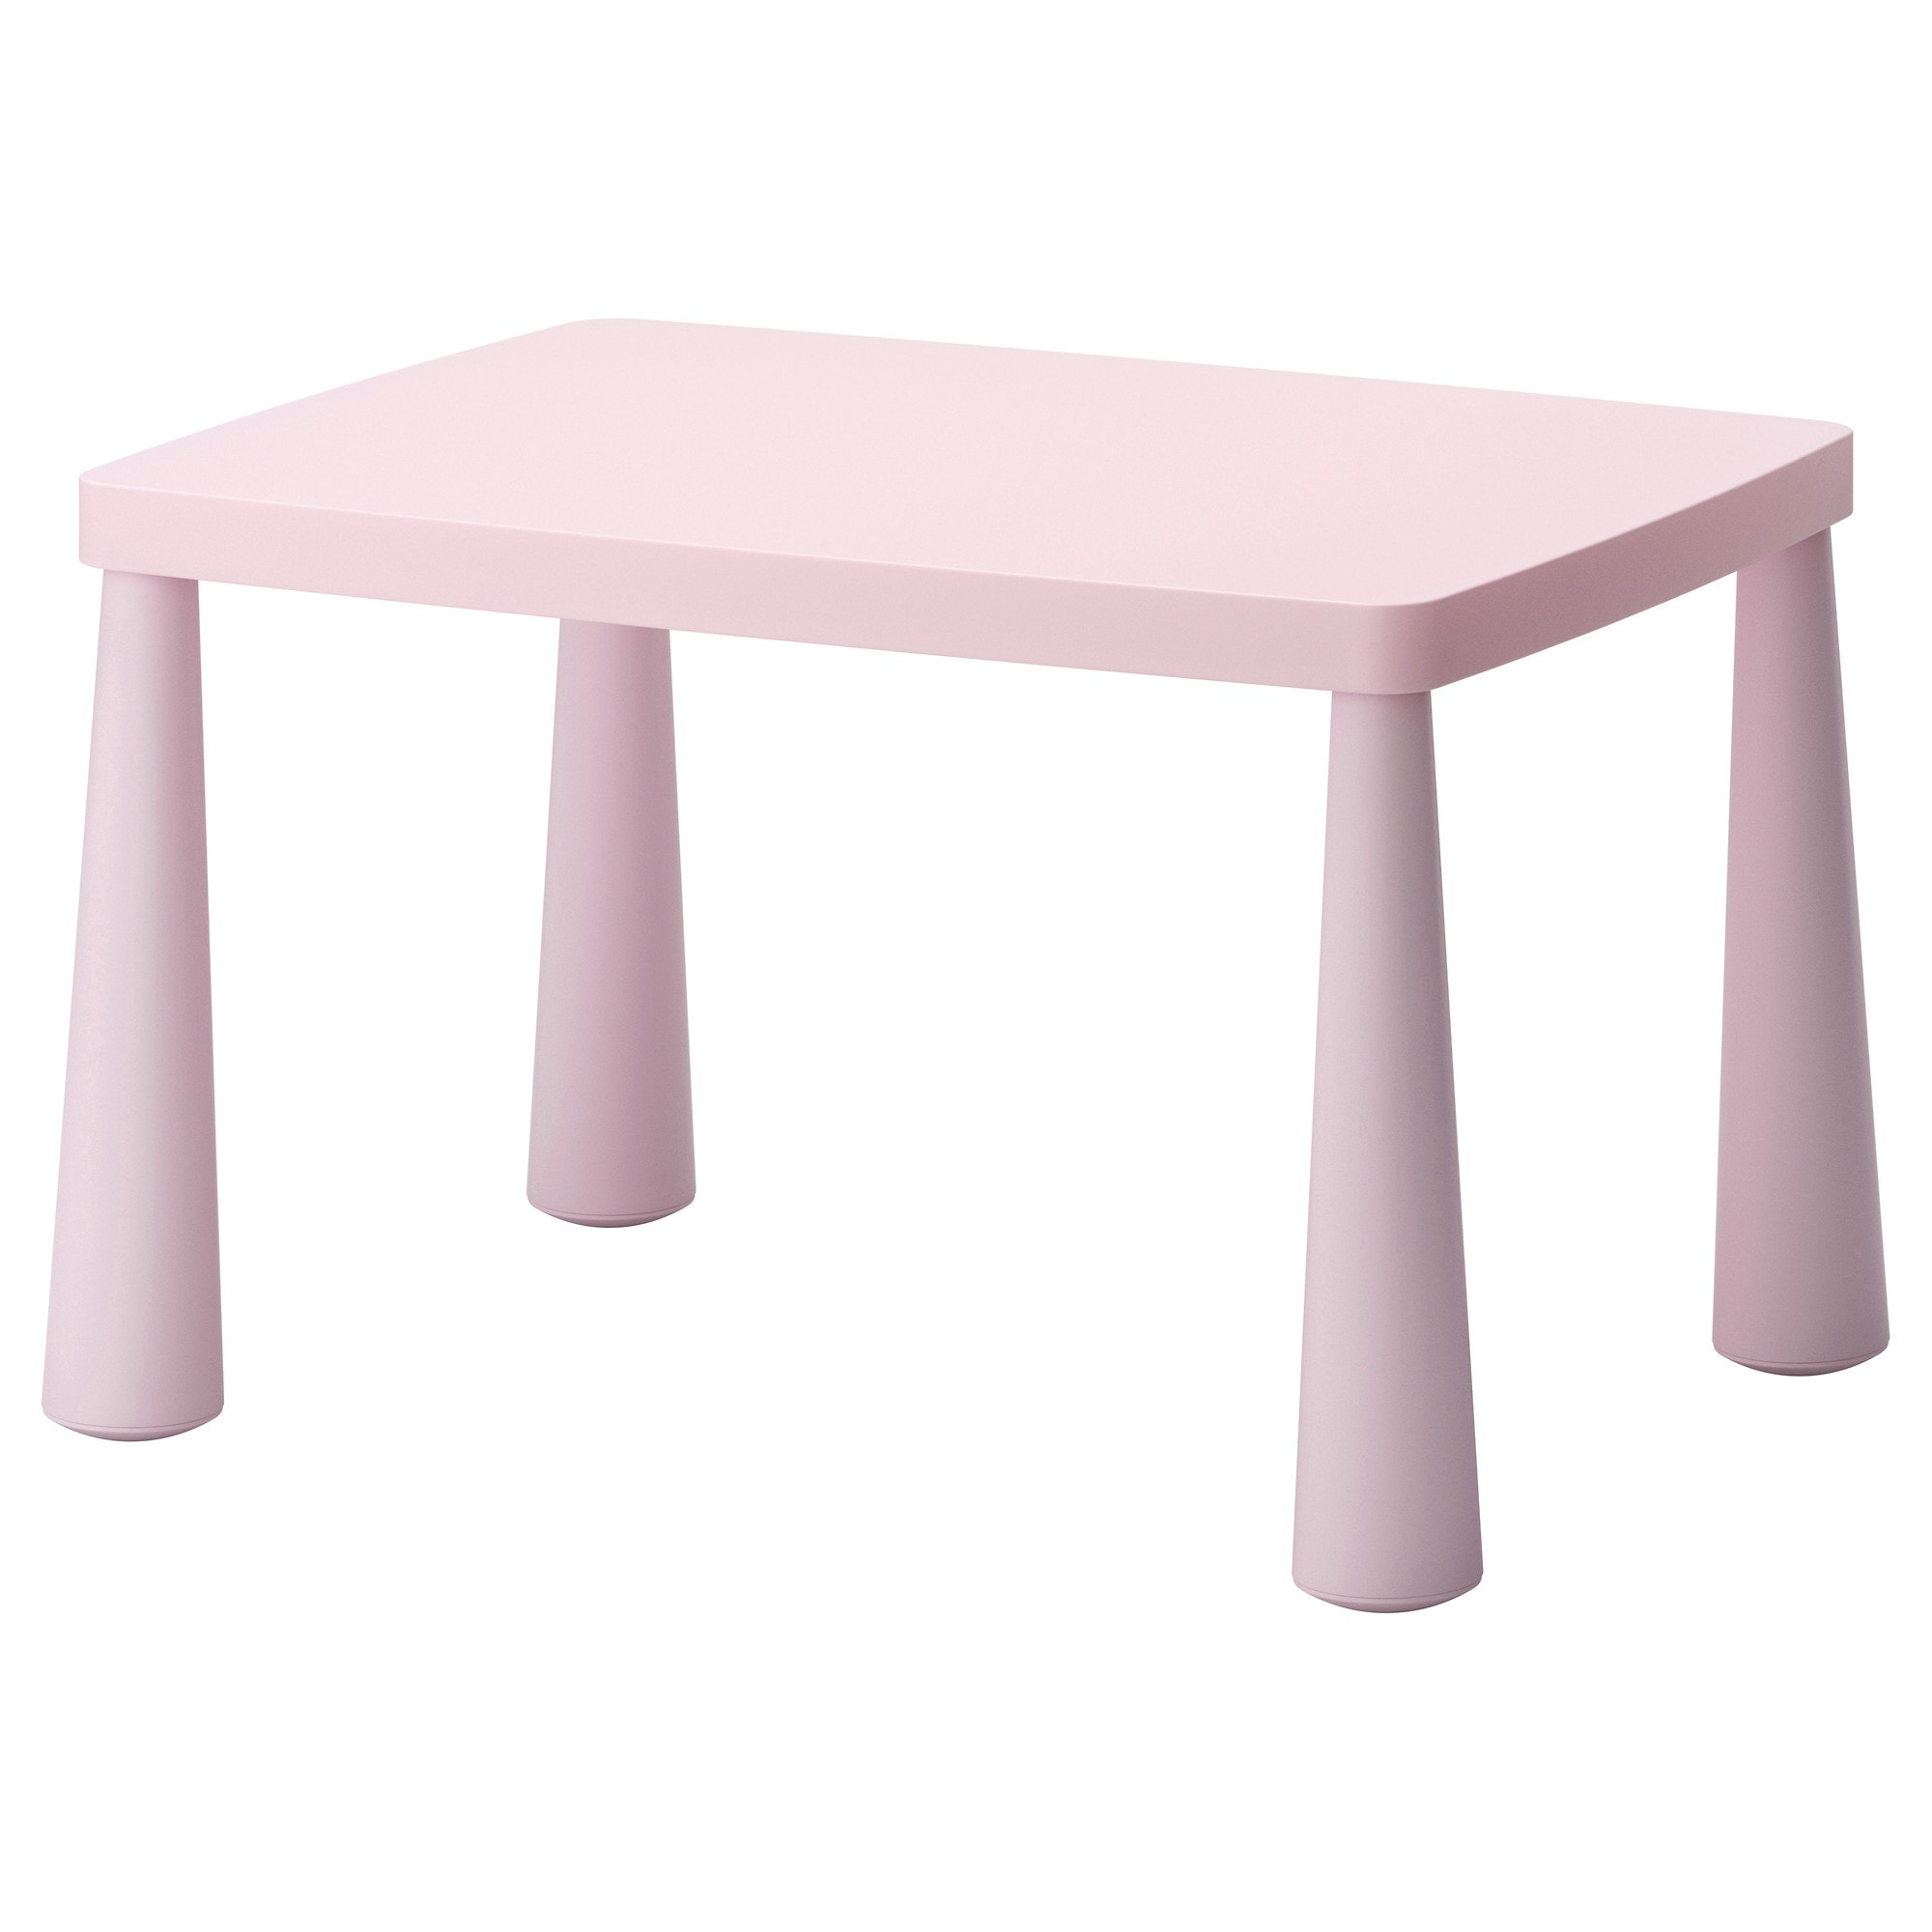 Ikea kids table and chairs - Mammut Children S Table Indoor Outdoor Light Pink Light Pink Length 30 3